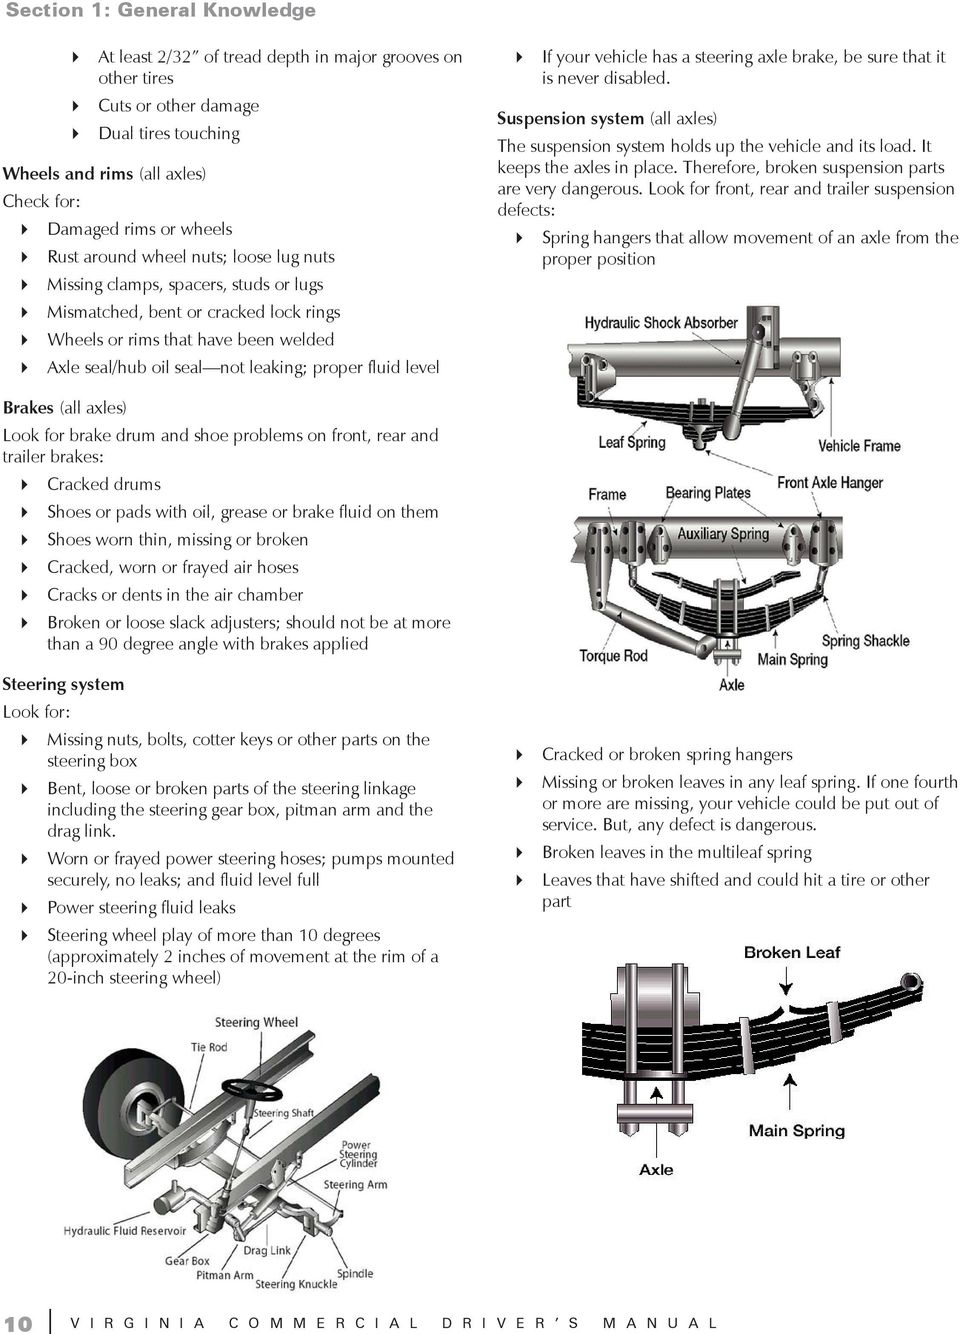 level If your vehicle has a steering axle brake, be sure that it is never disabled. Suspension system (all axles) The suspension system holds up the vehicle and its load. It keeps the axles in place.